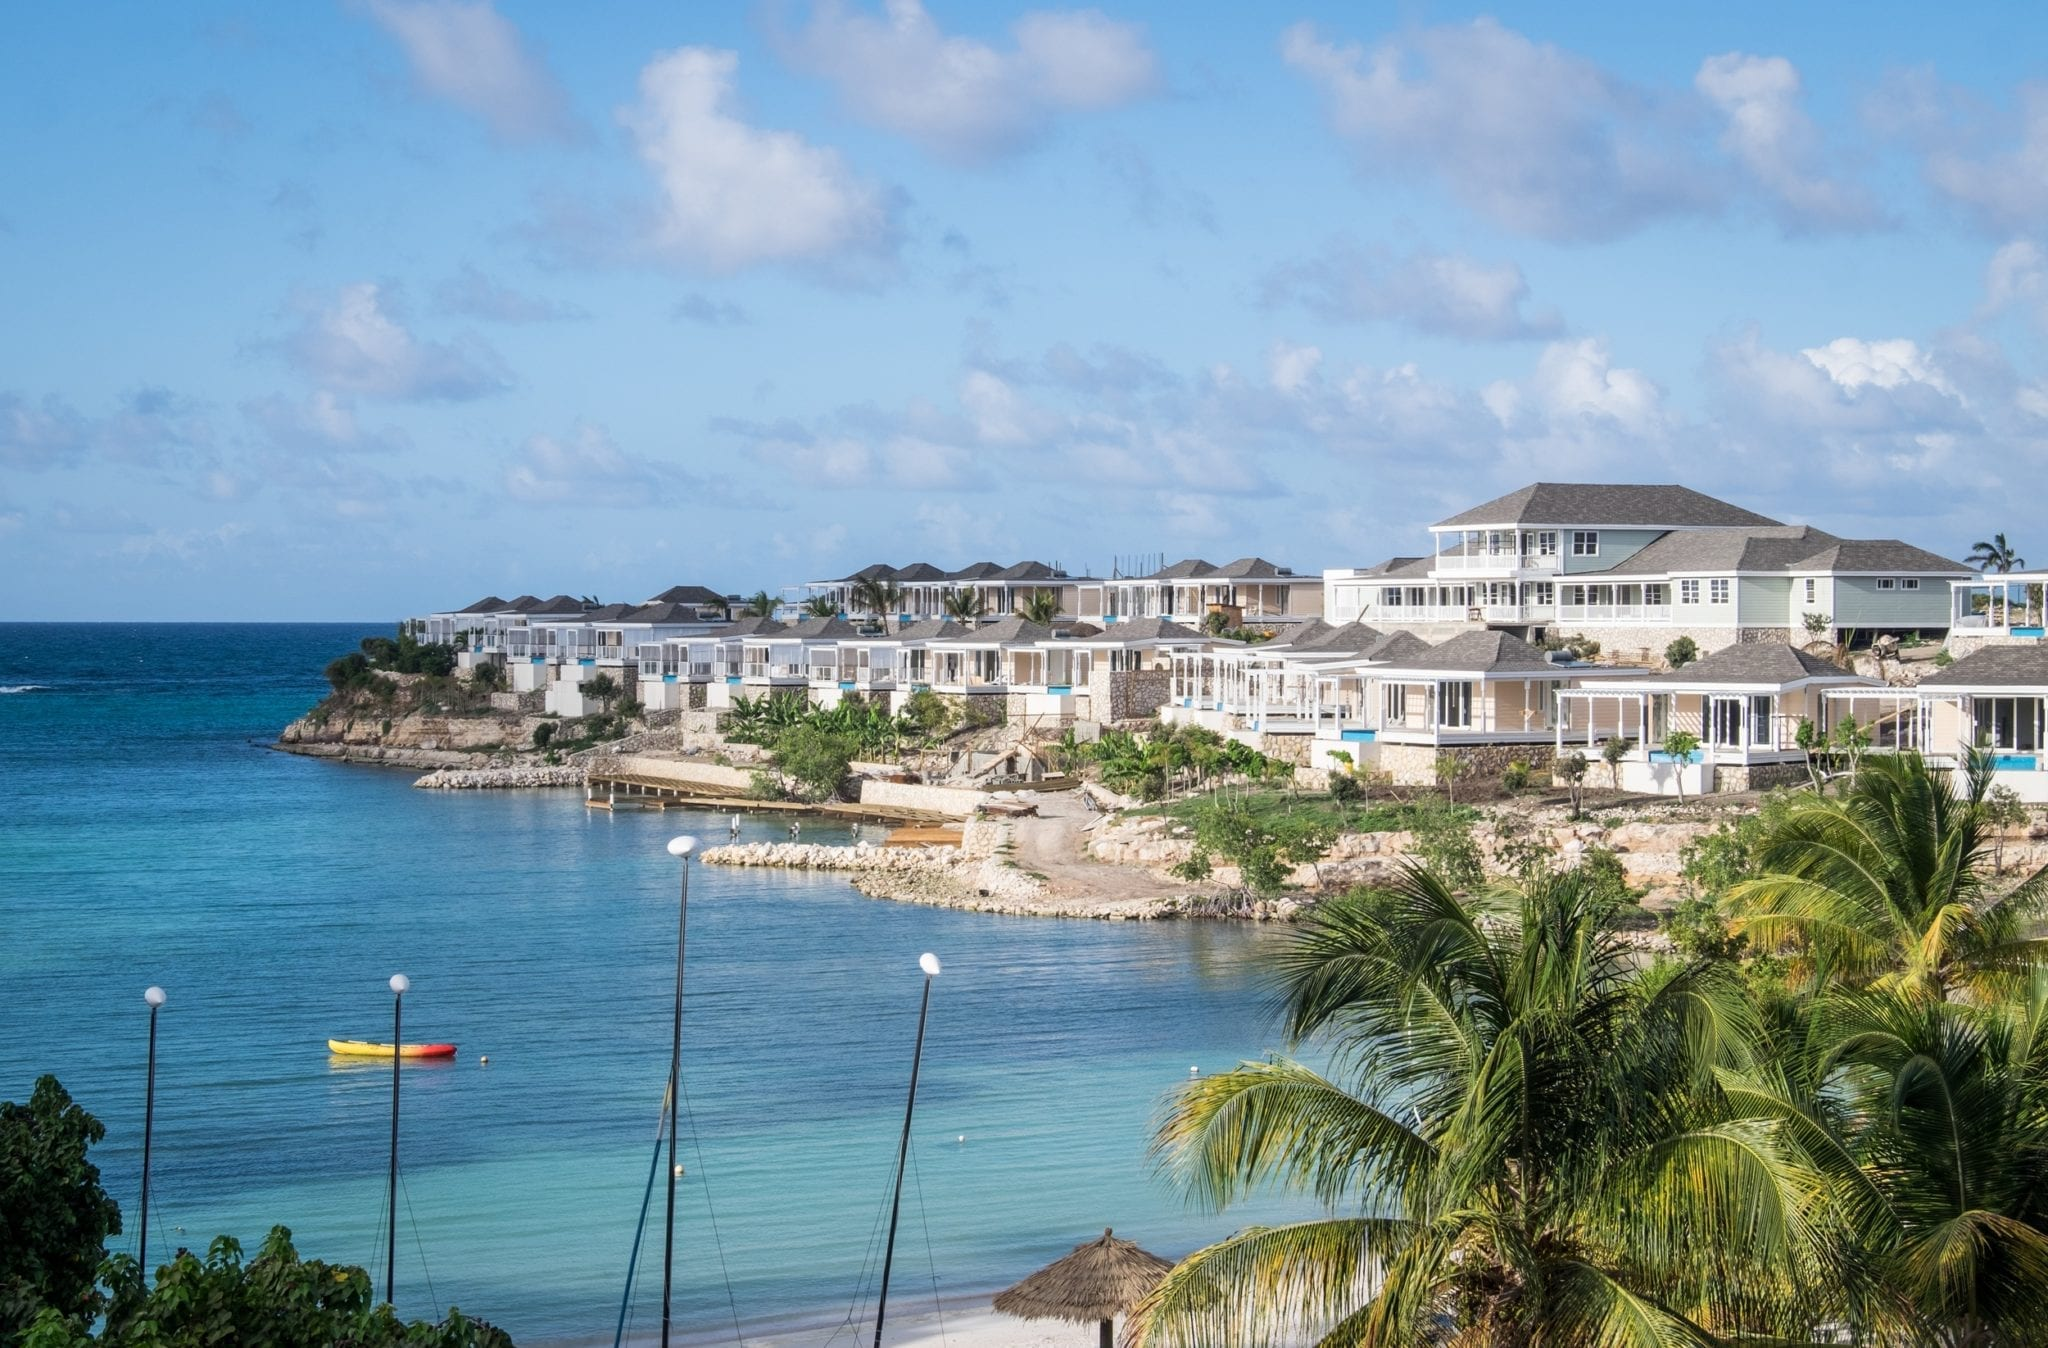 A view over the turquoise Caribbean Sea with white hotel rooms on a piece of rocky land to the right. There are palm trees in one corner.